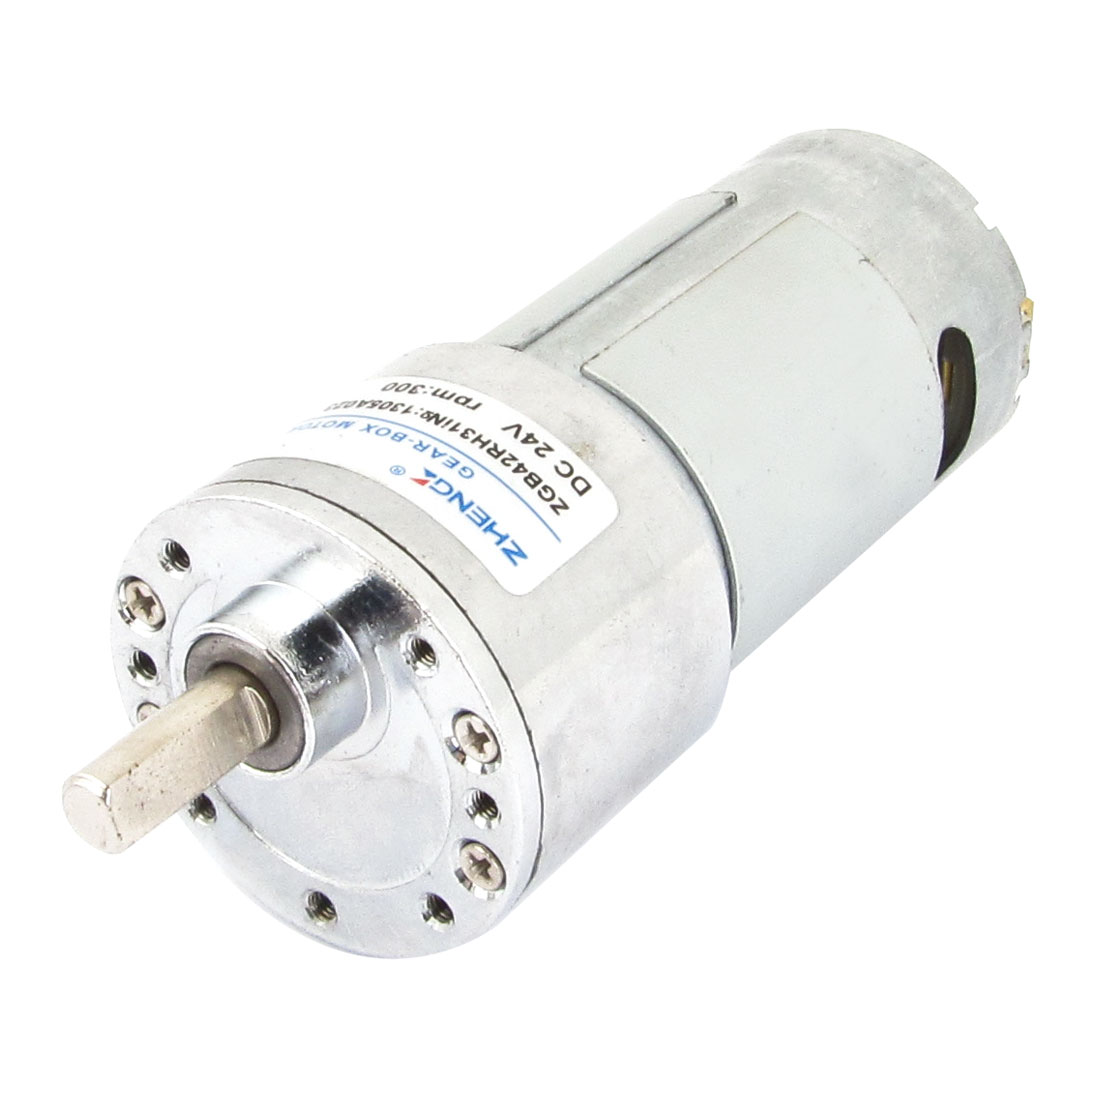 24V Voltage 300RPM Permanent Magnetism DC Geared Box Motor